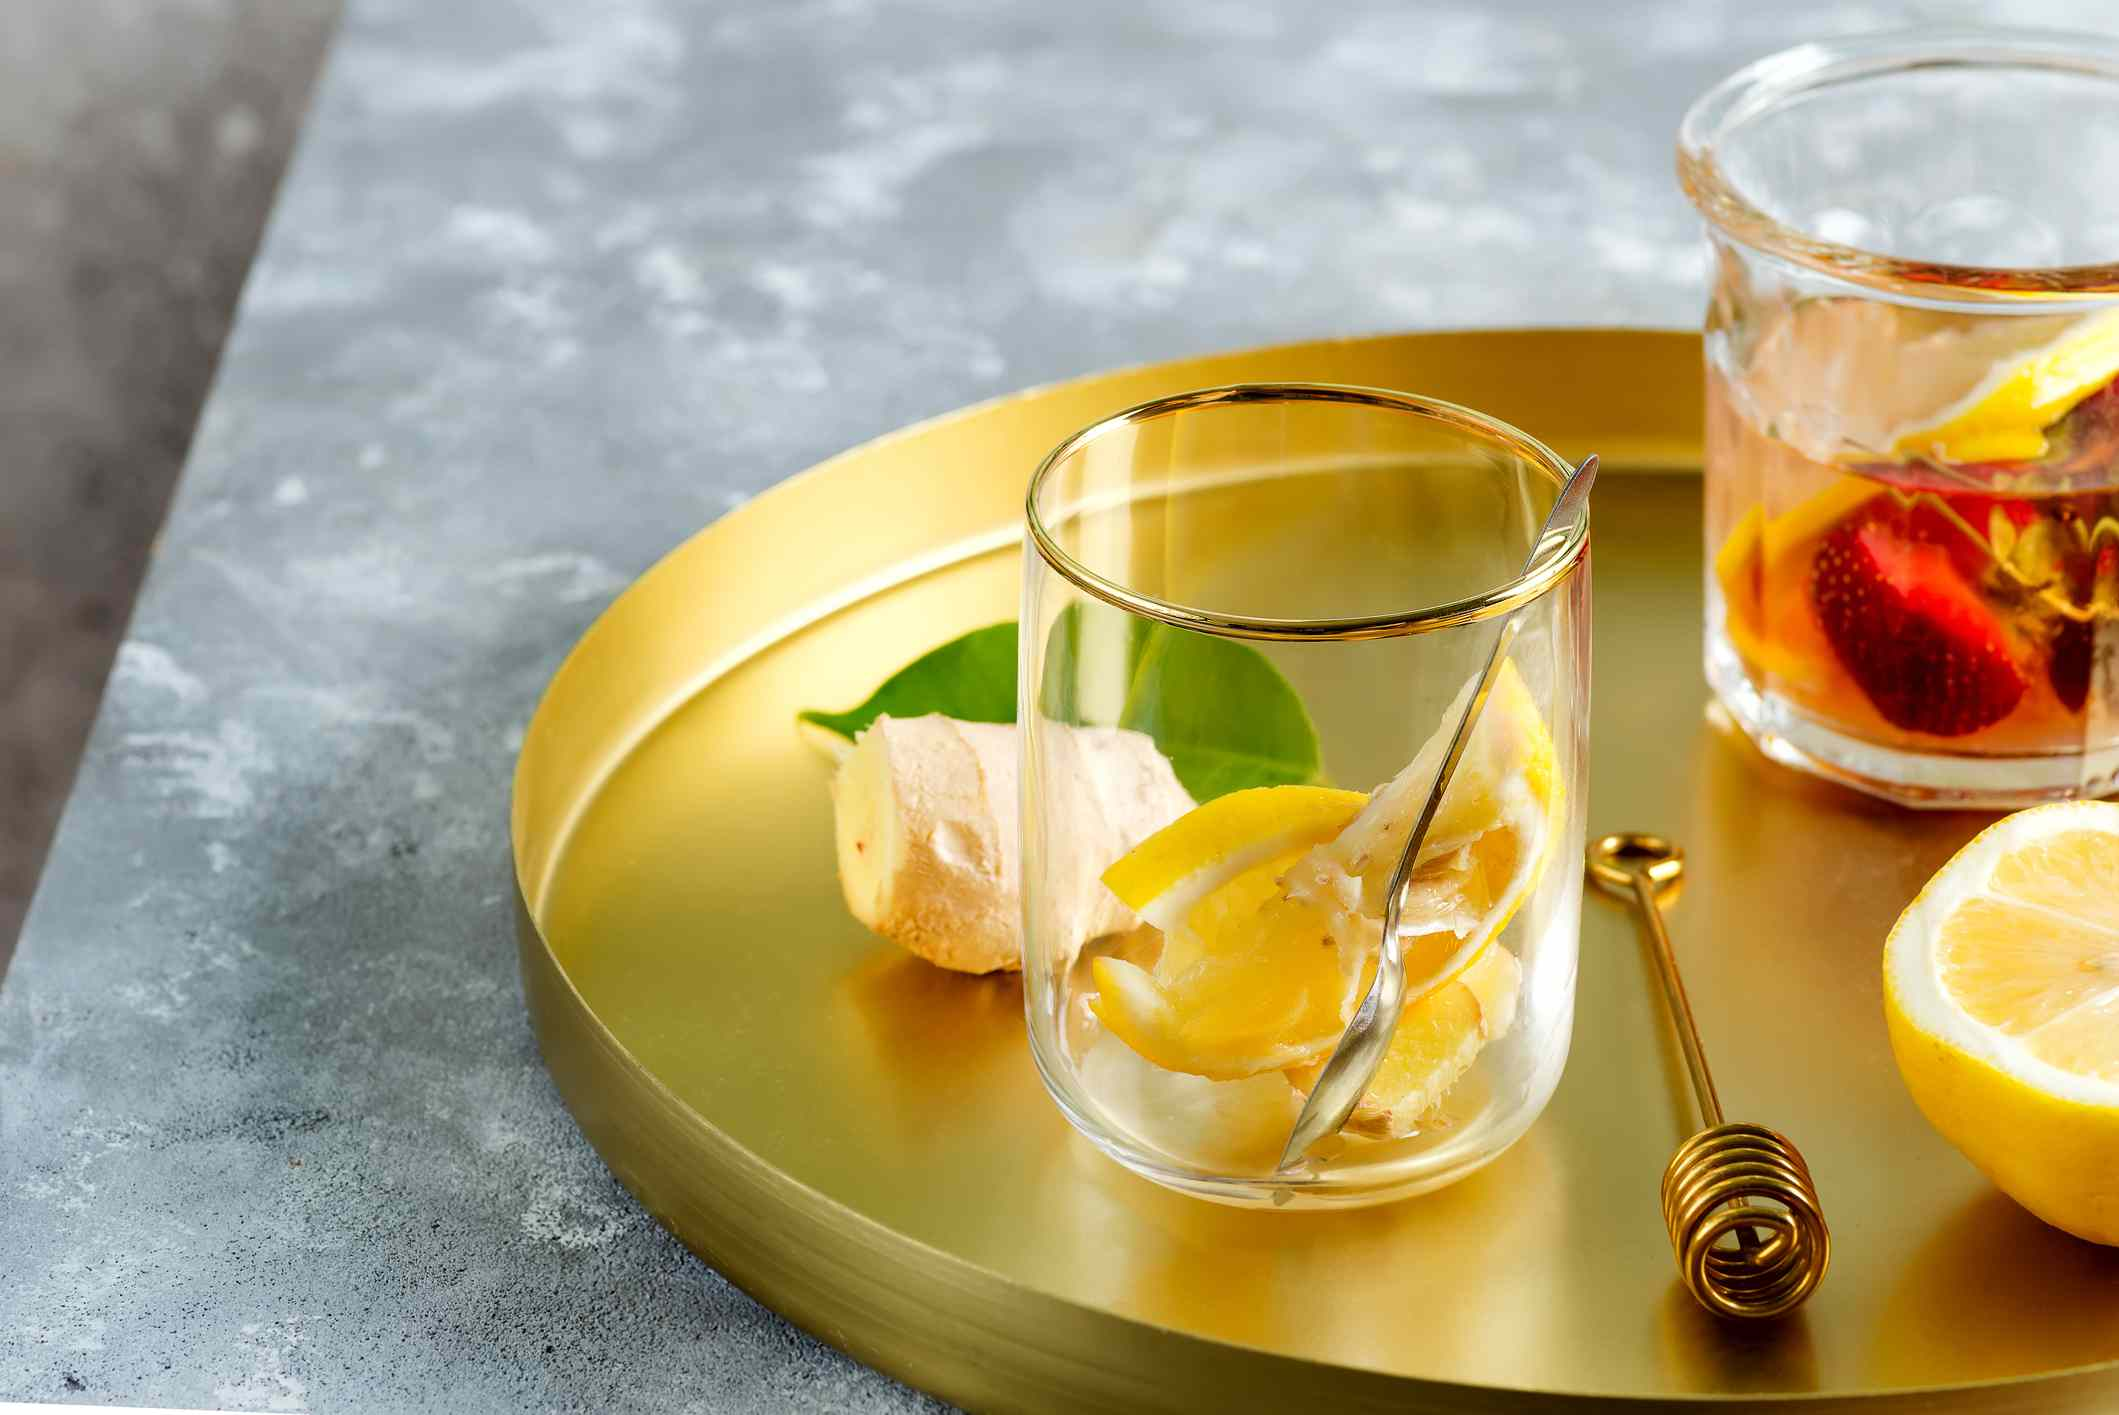 Glasses with lemon in them on a gold serving tray.